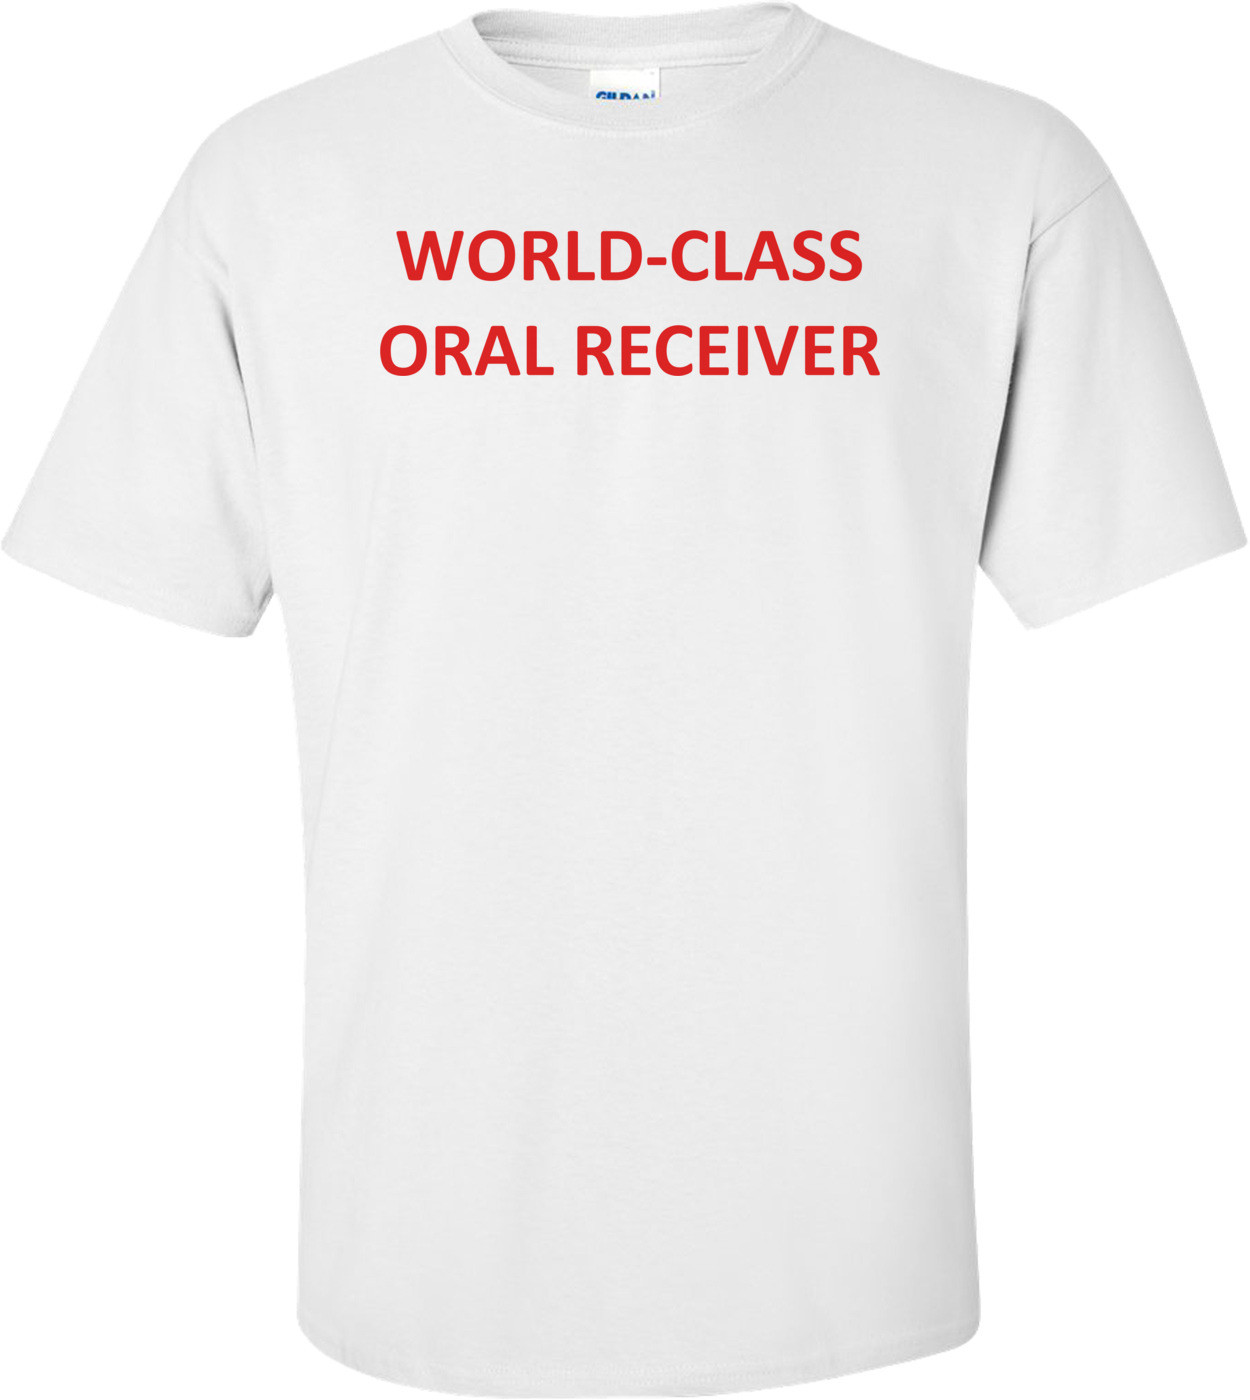 WORLD-CLASS ORAL RECEIVER Shirt